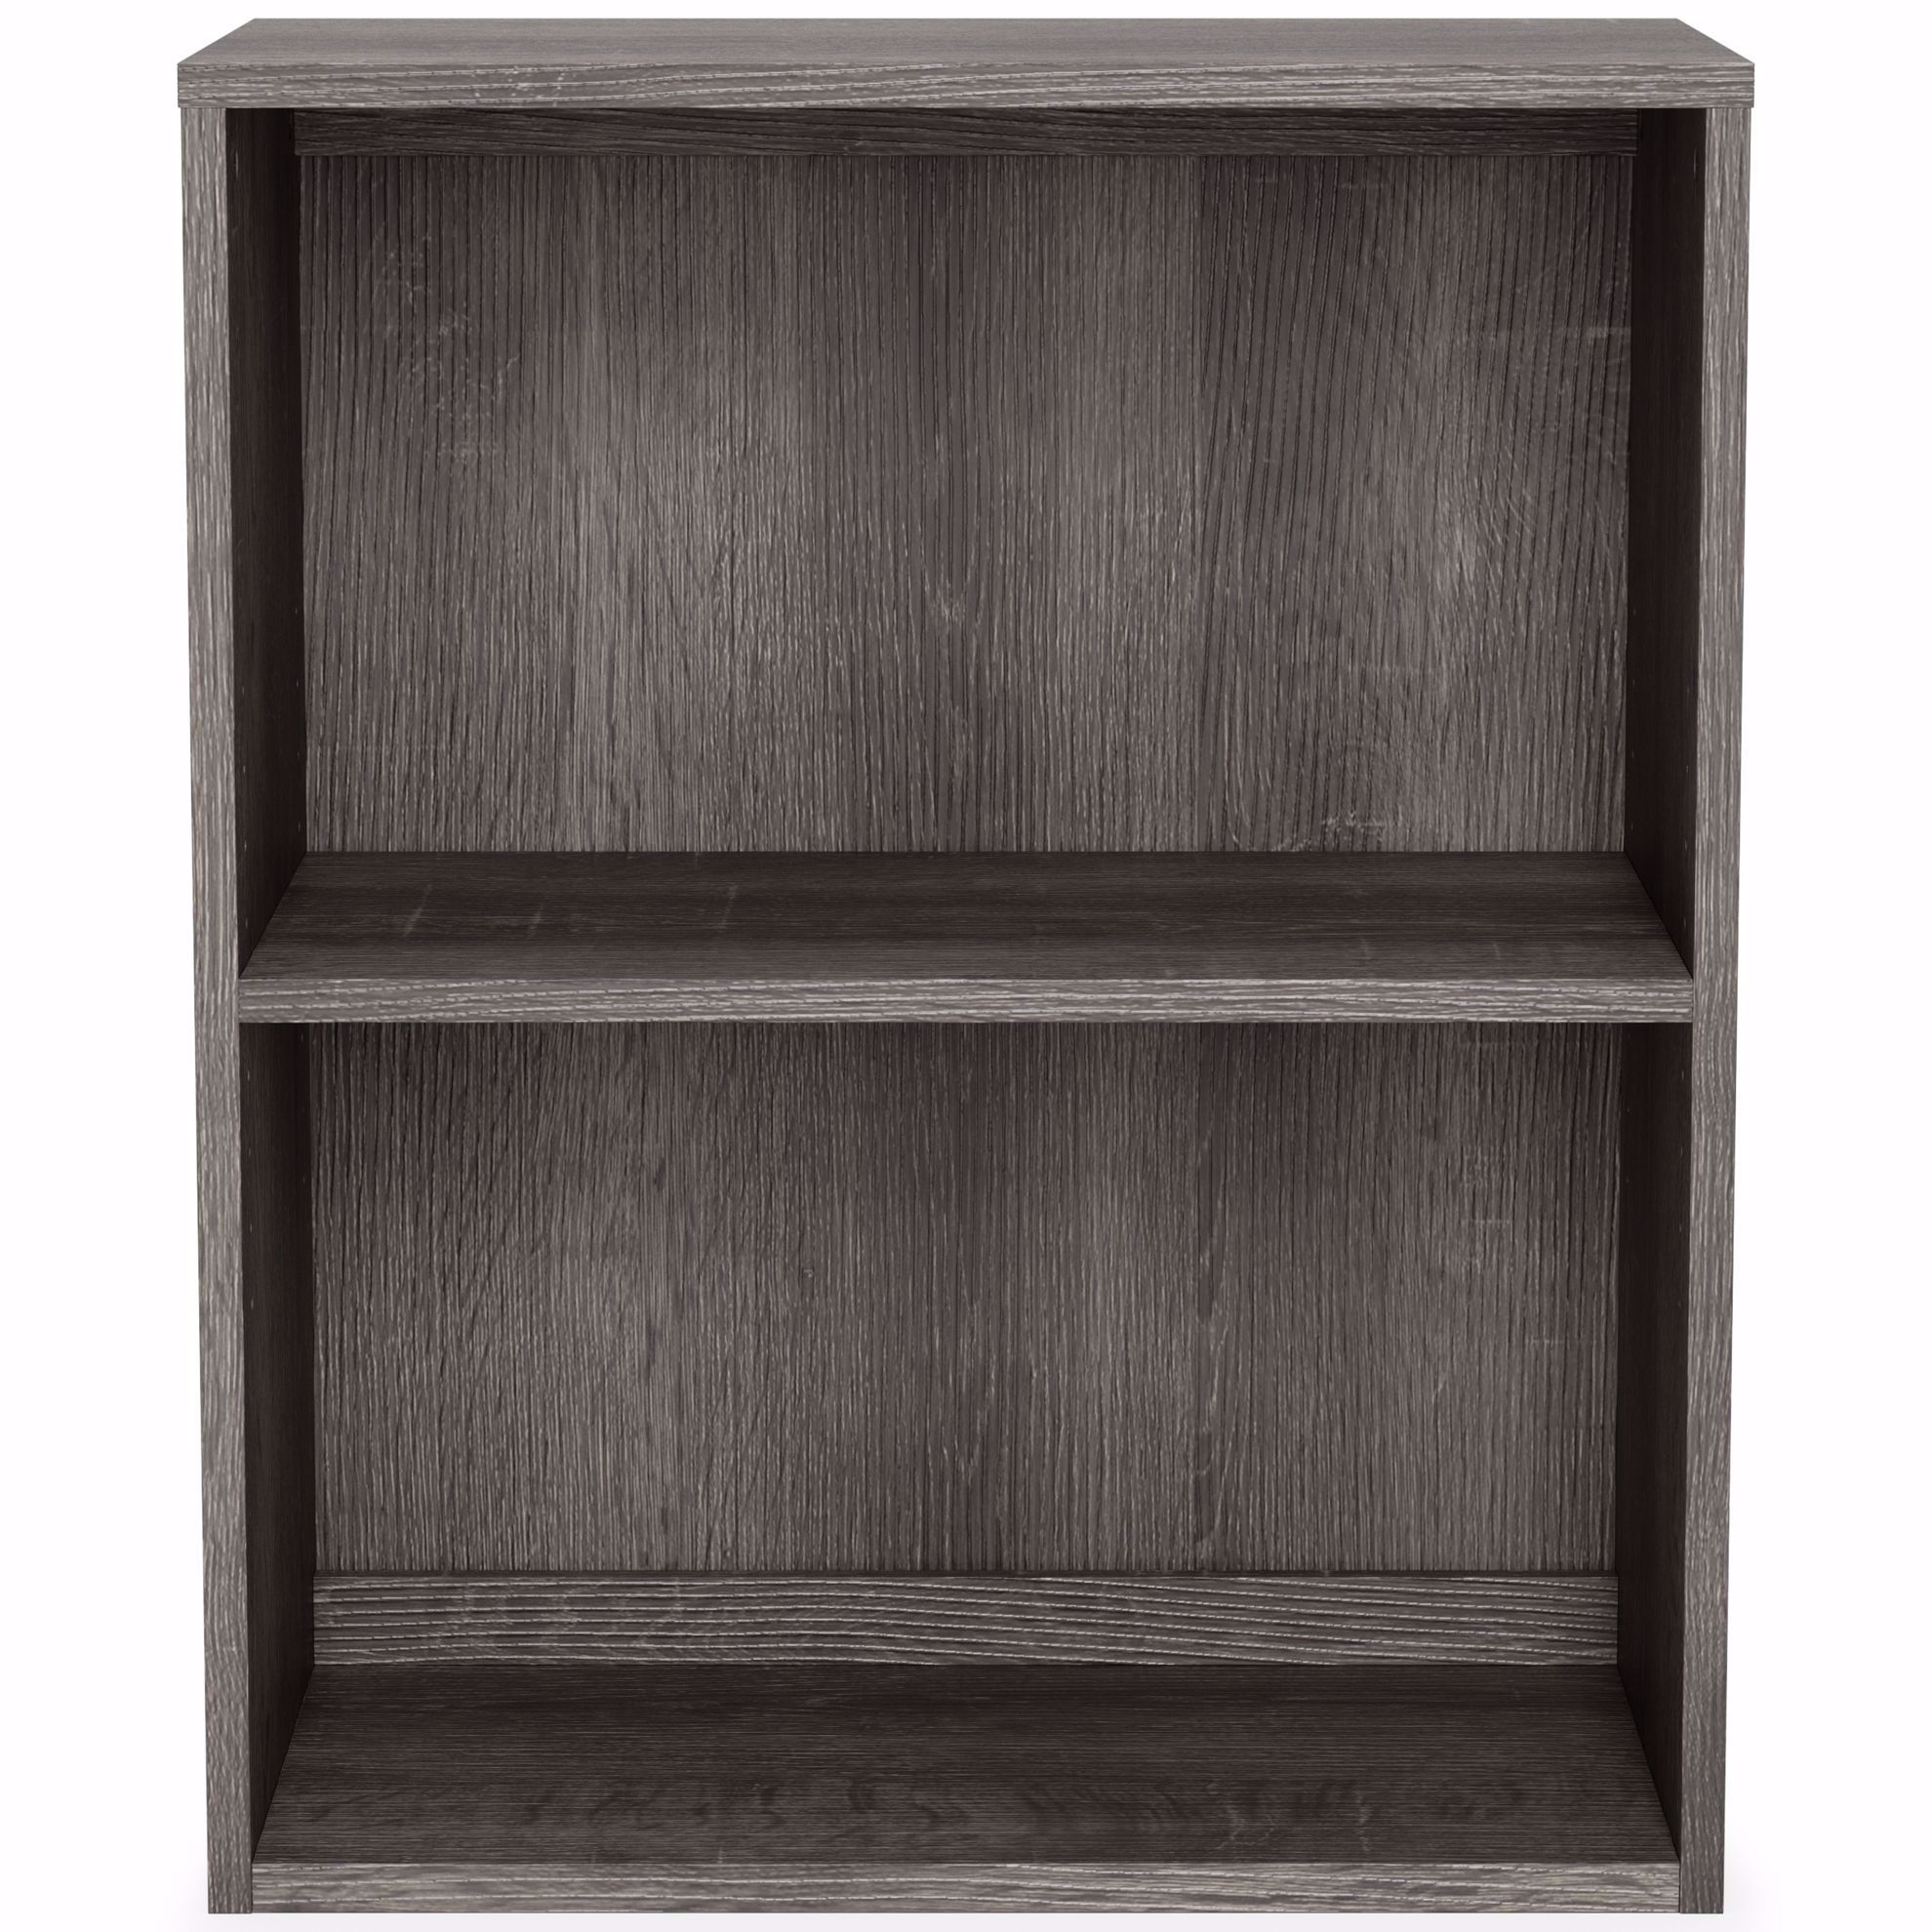 Picture of Arlenbry Small Bookcase